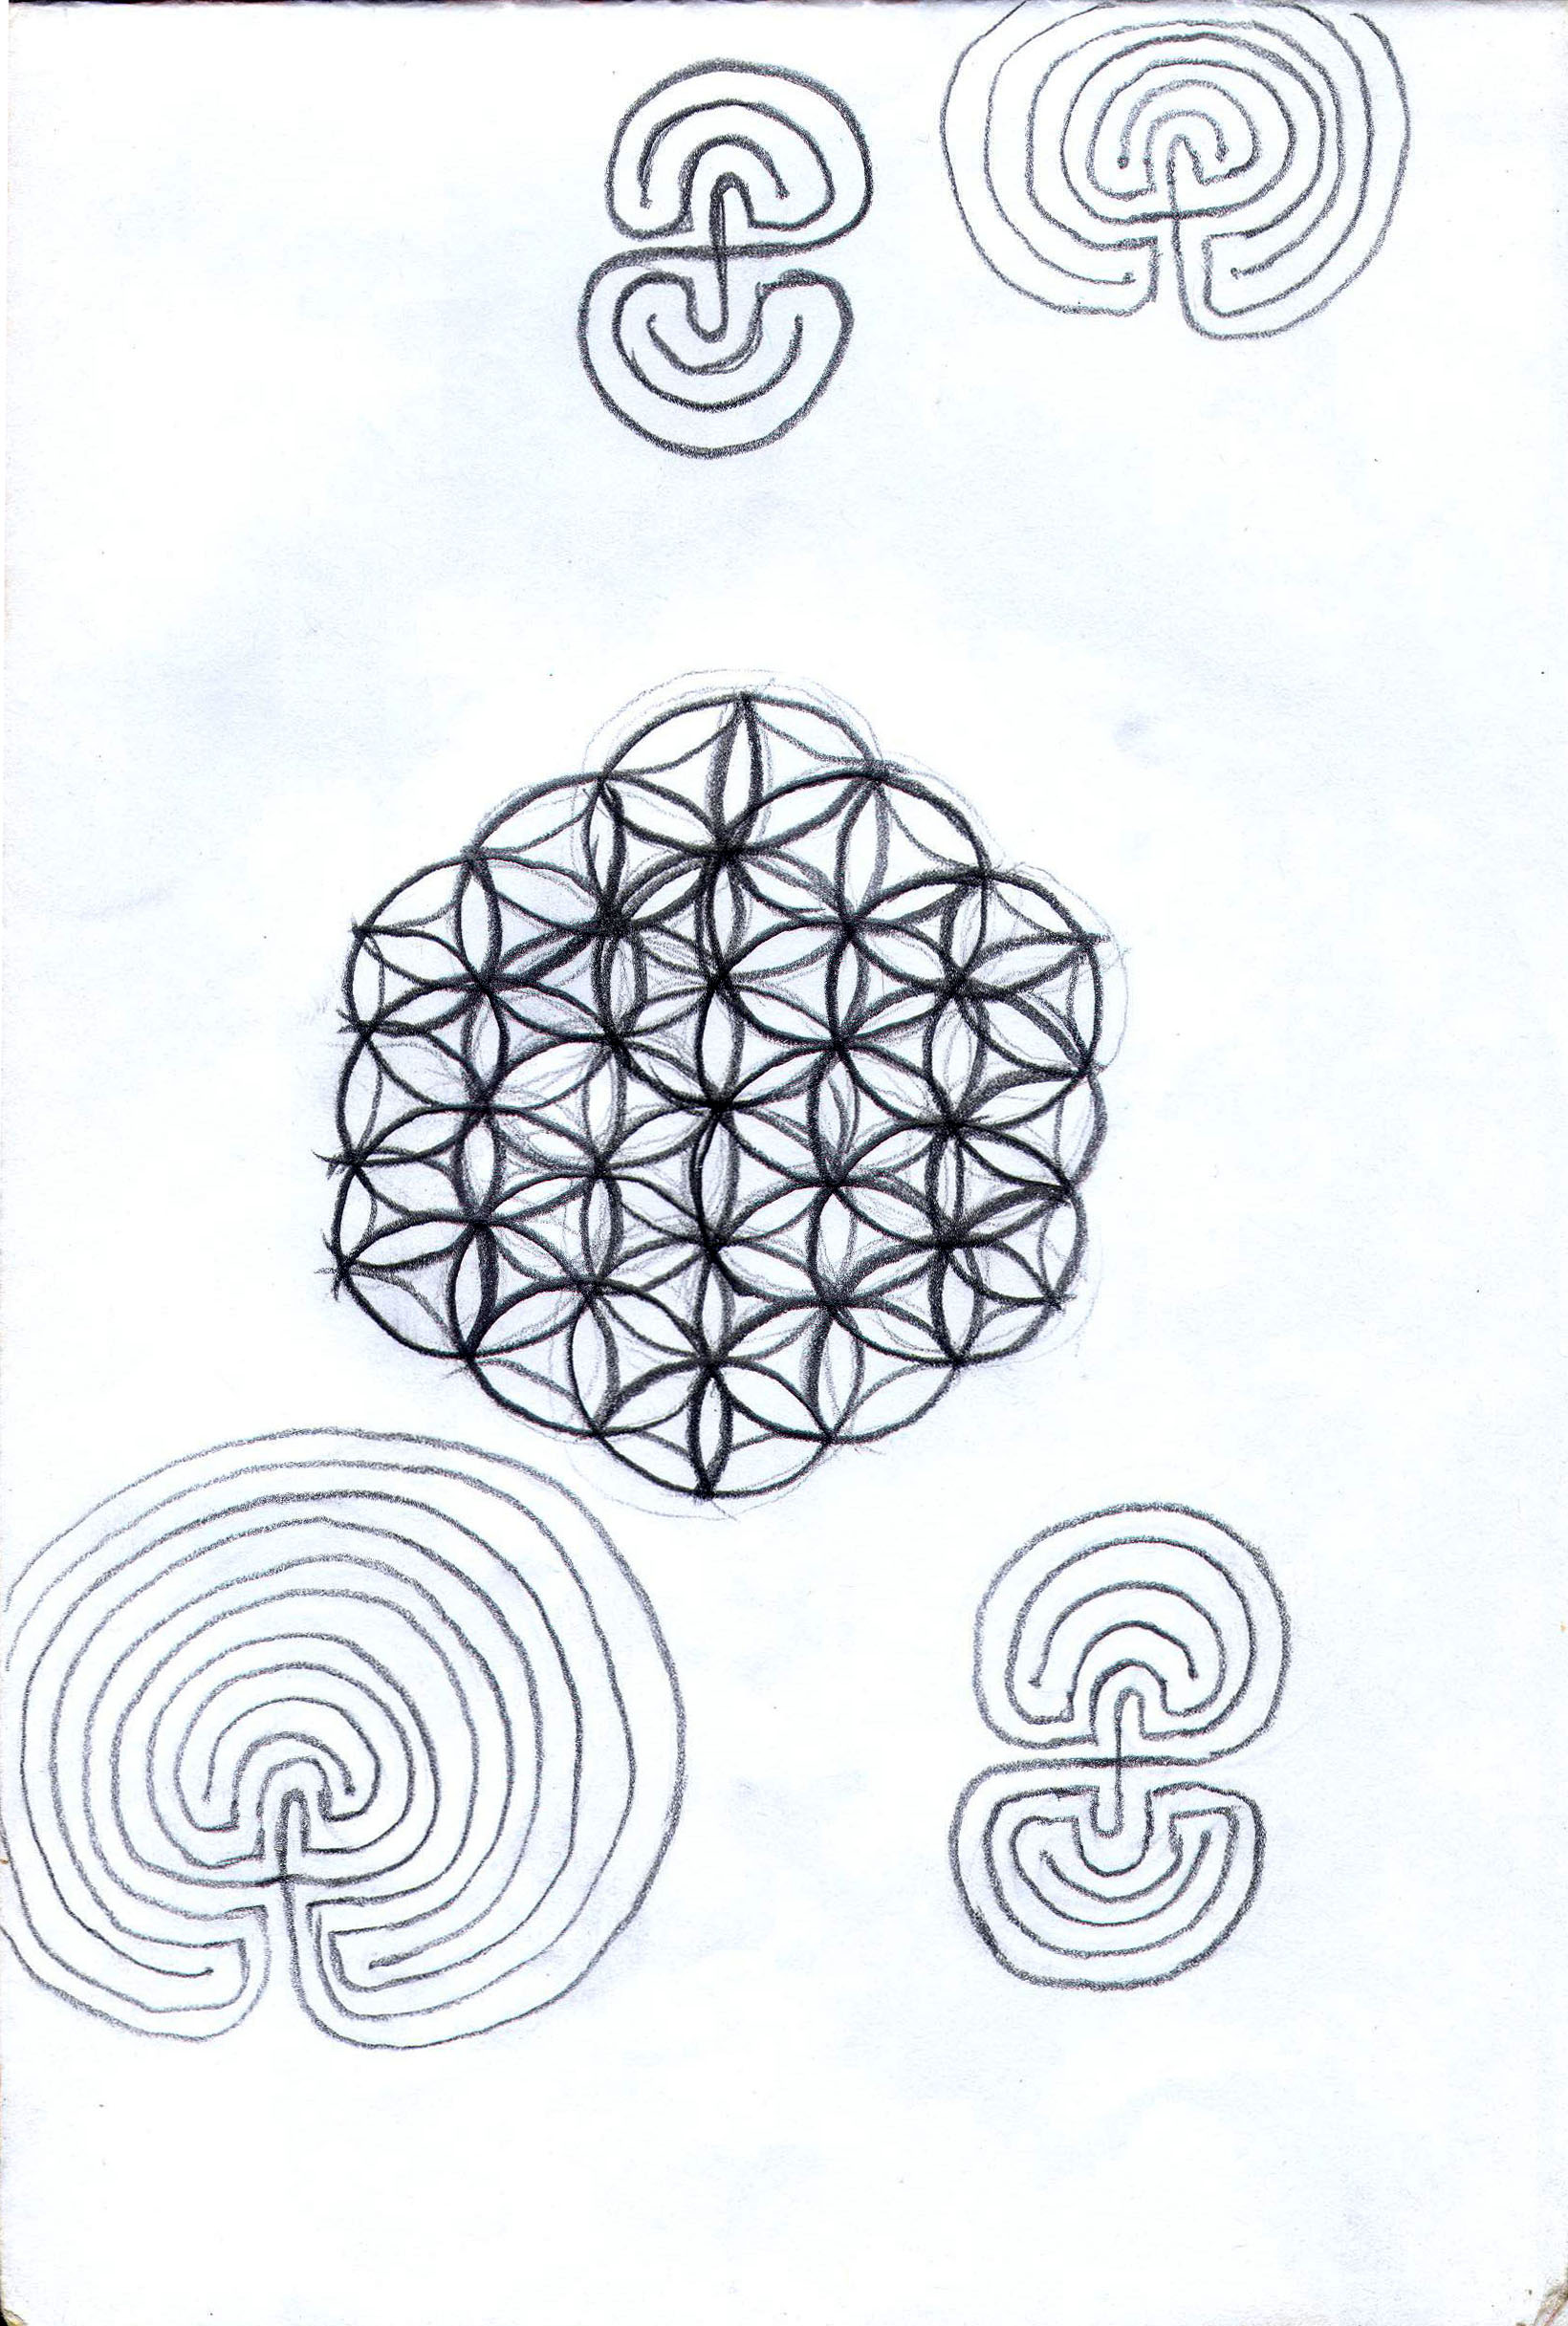 Sketches from the source by a Philippine shaman Bong Delatorre 59